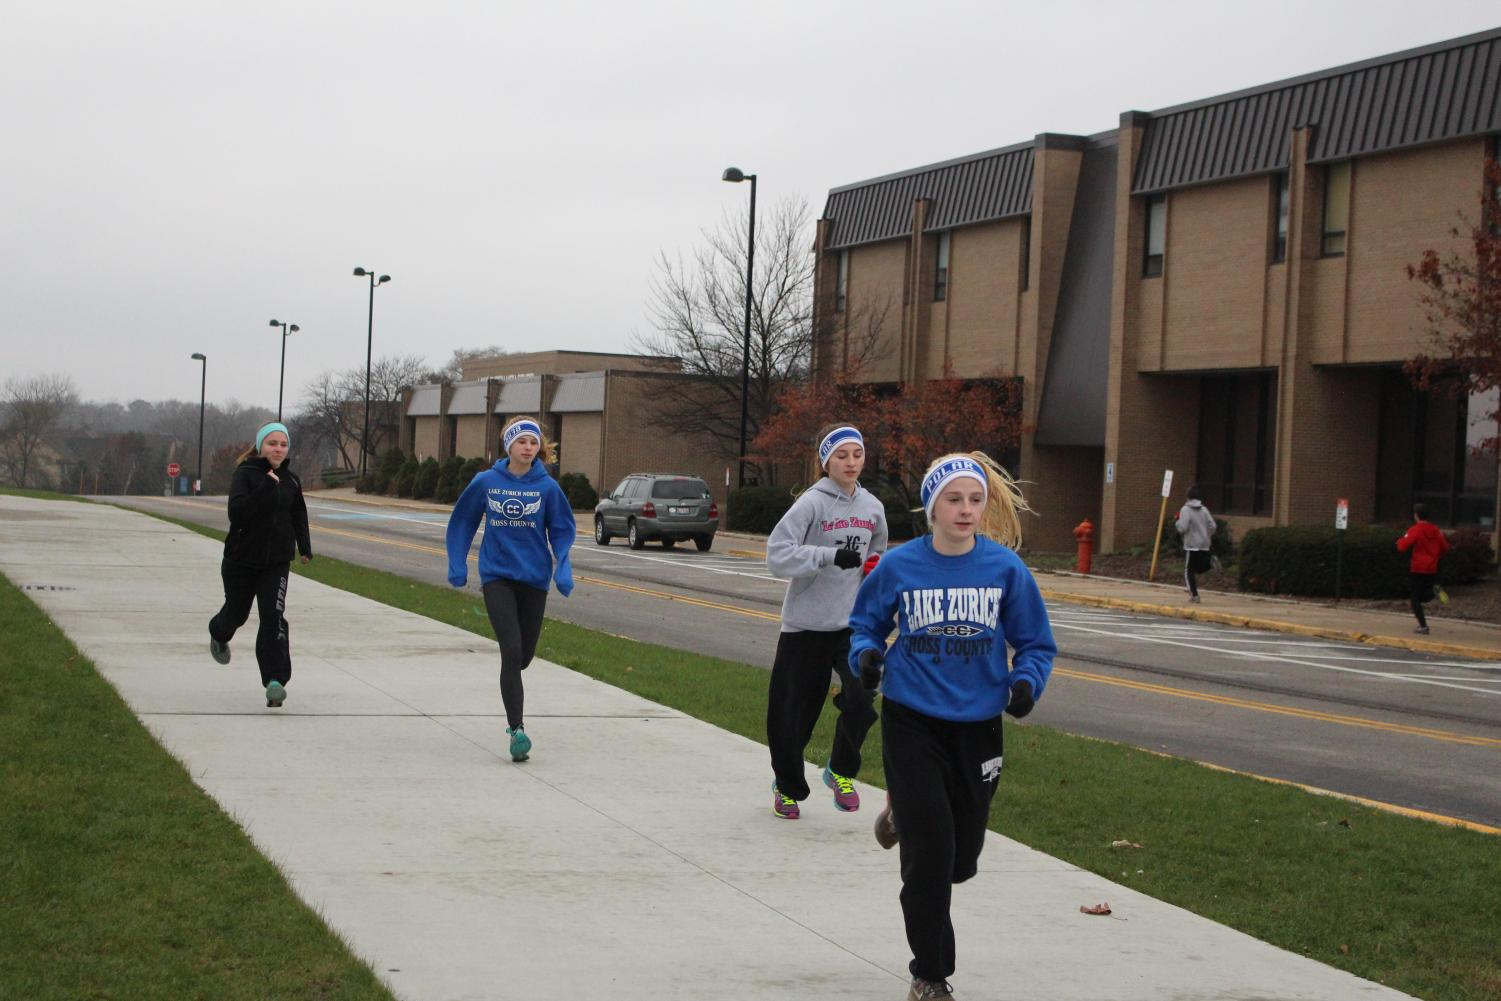 Hayley Burk, freshman, Emily Burns and Jillian Baffa, juniors, running after school for Polar Bears. Members of Polar Bears meet daily after school to train in the offseason.